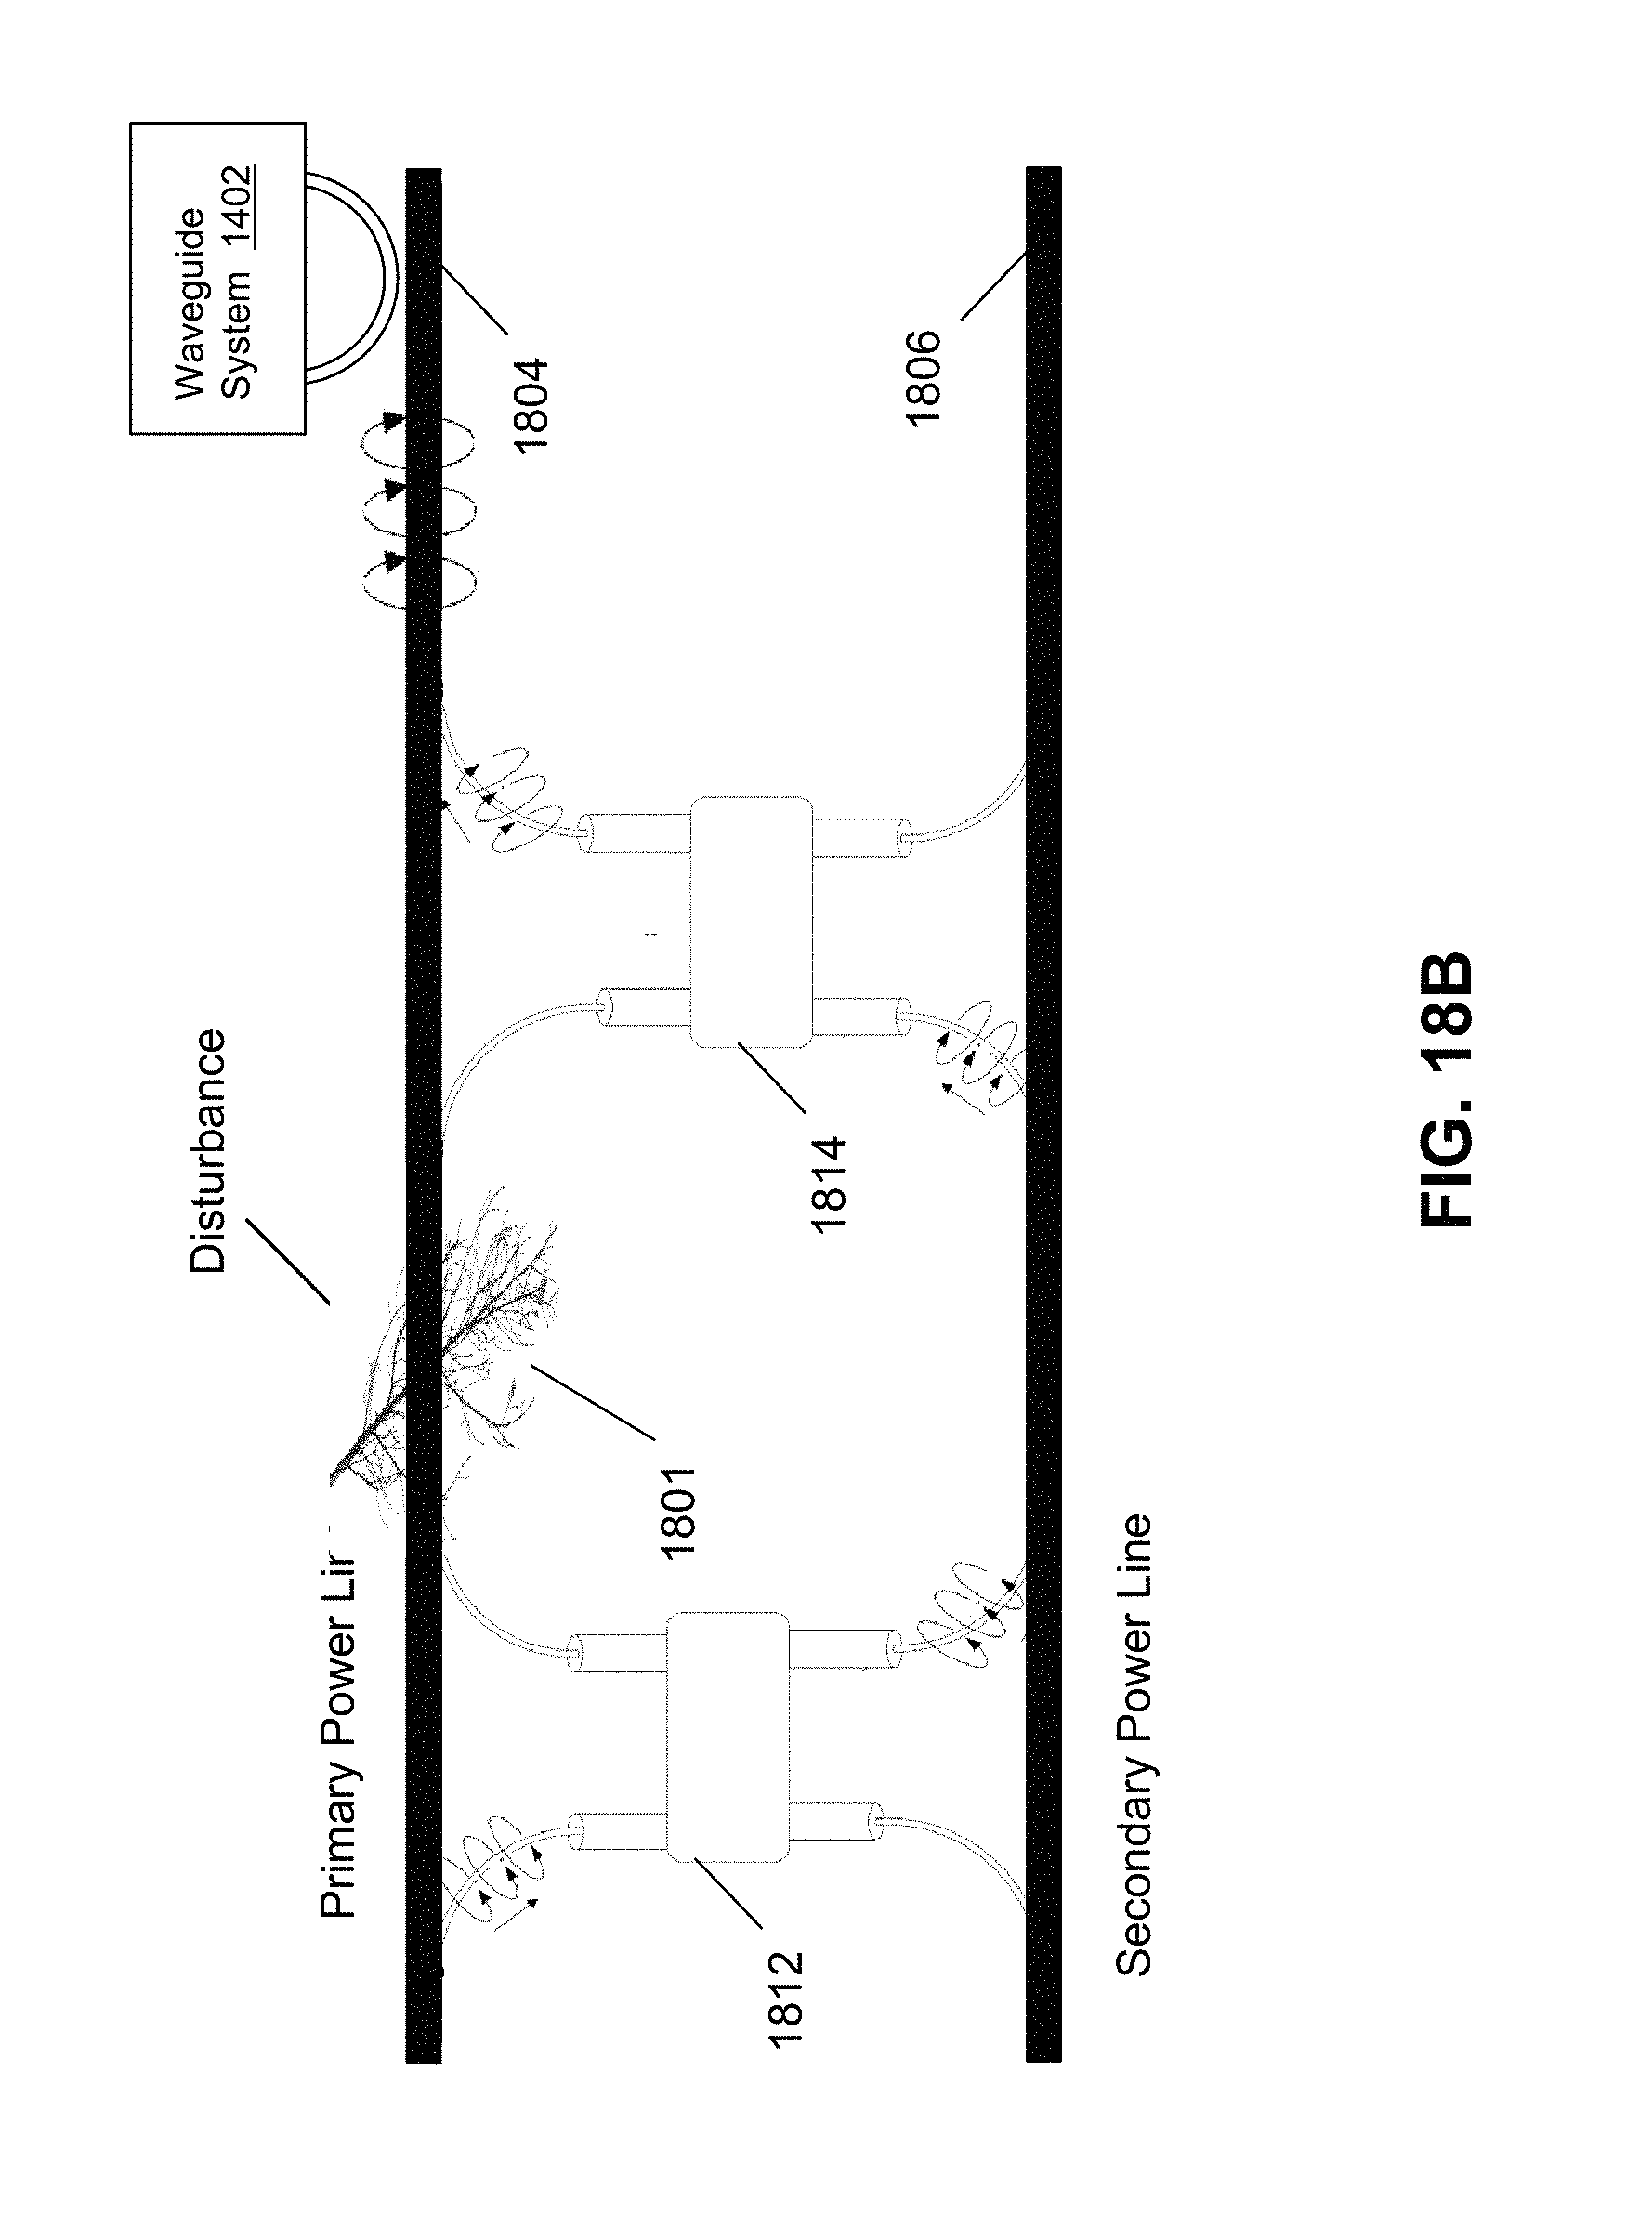 Us9954287b2 Apparatus For Converting Wireless Signals And Gsm Jammer Circuit Electromagnetic Waves Methods Thereof Google Patents